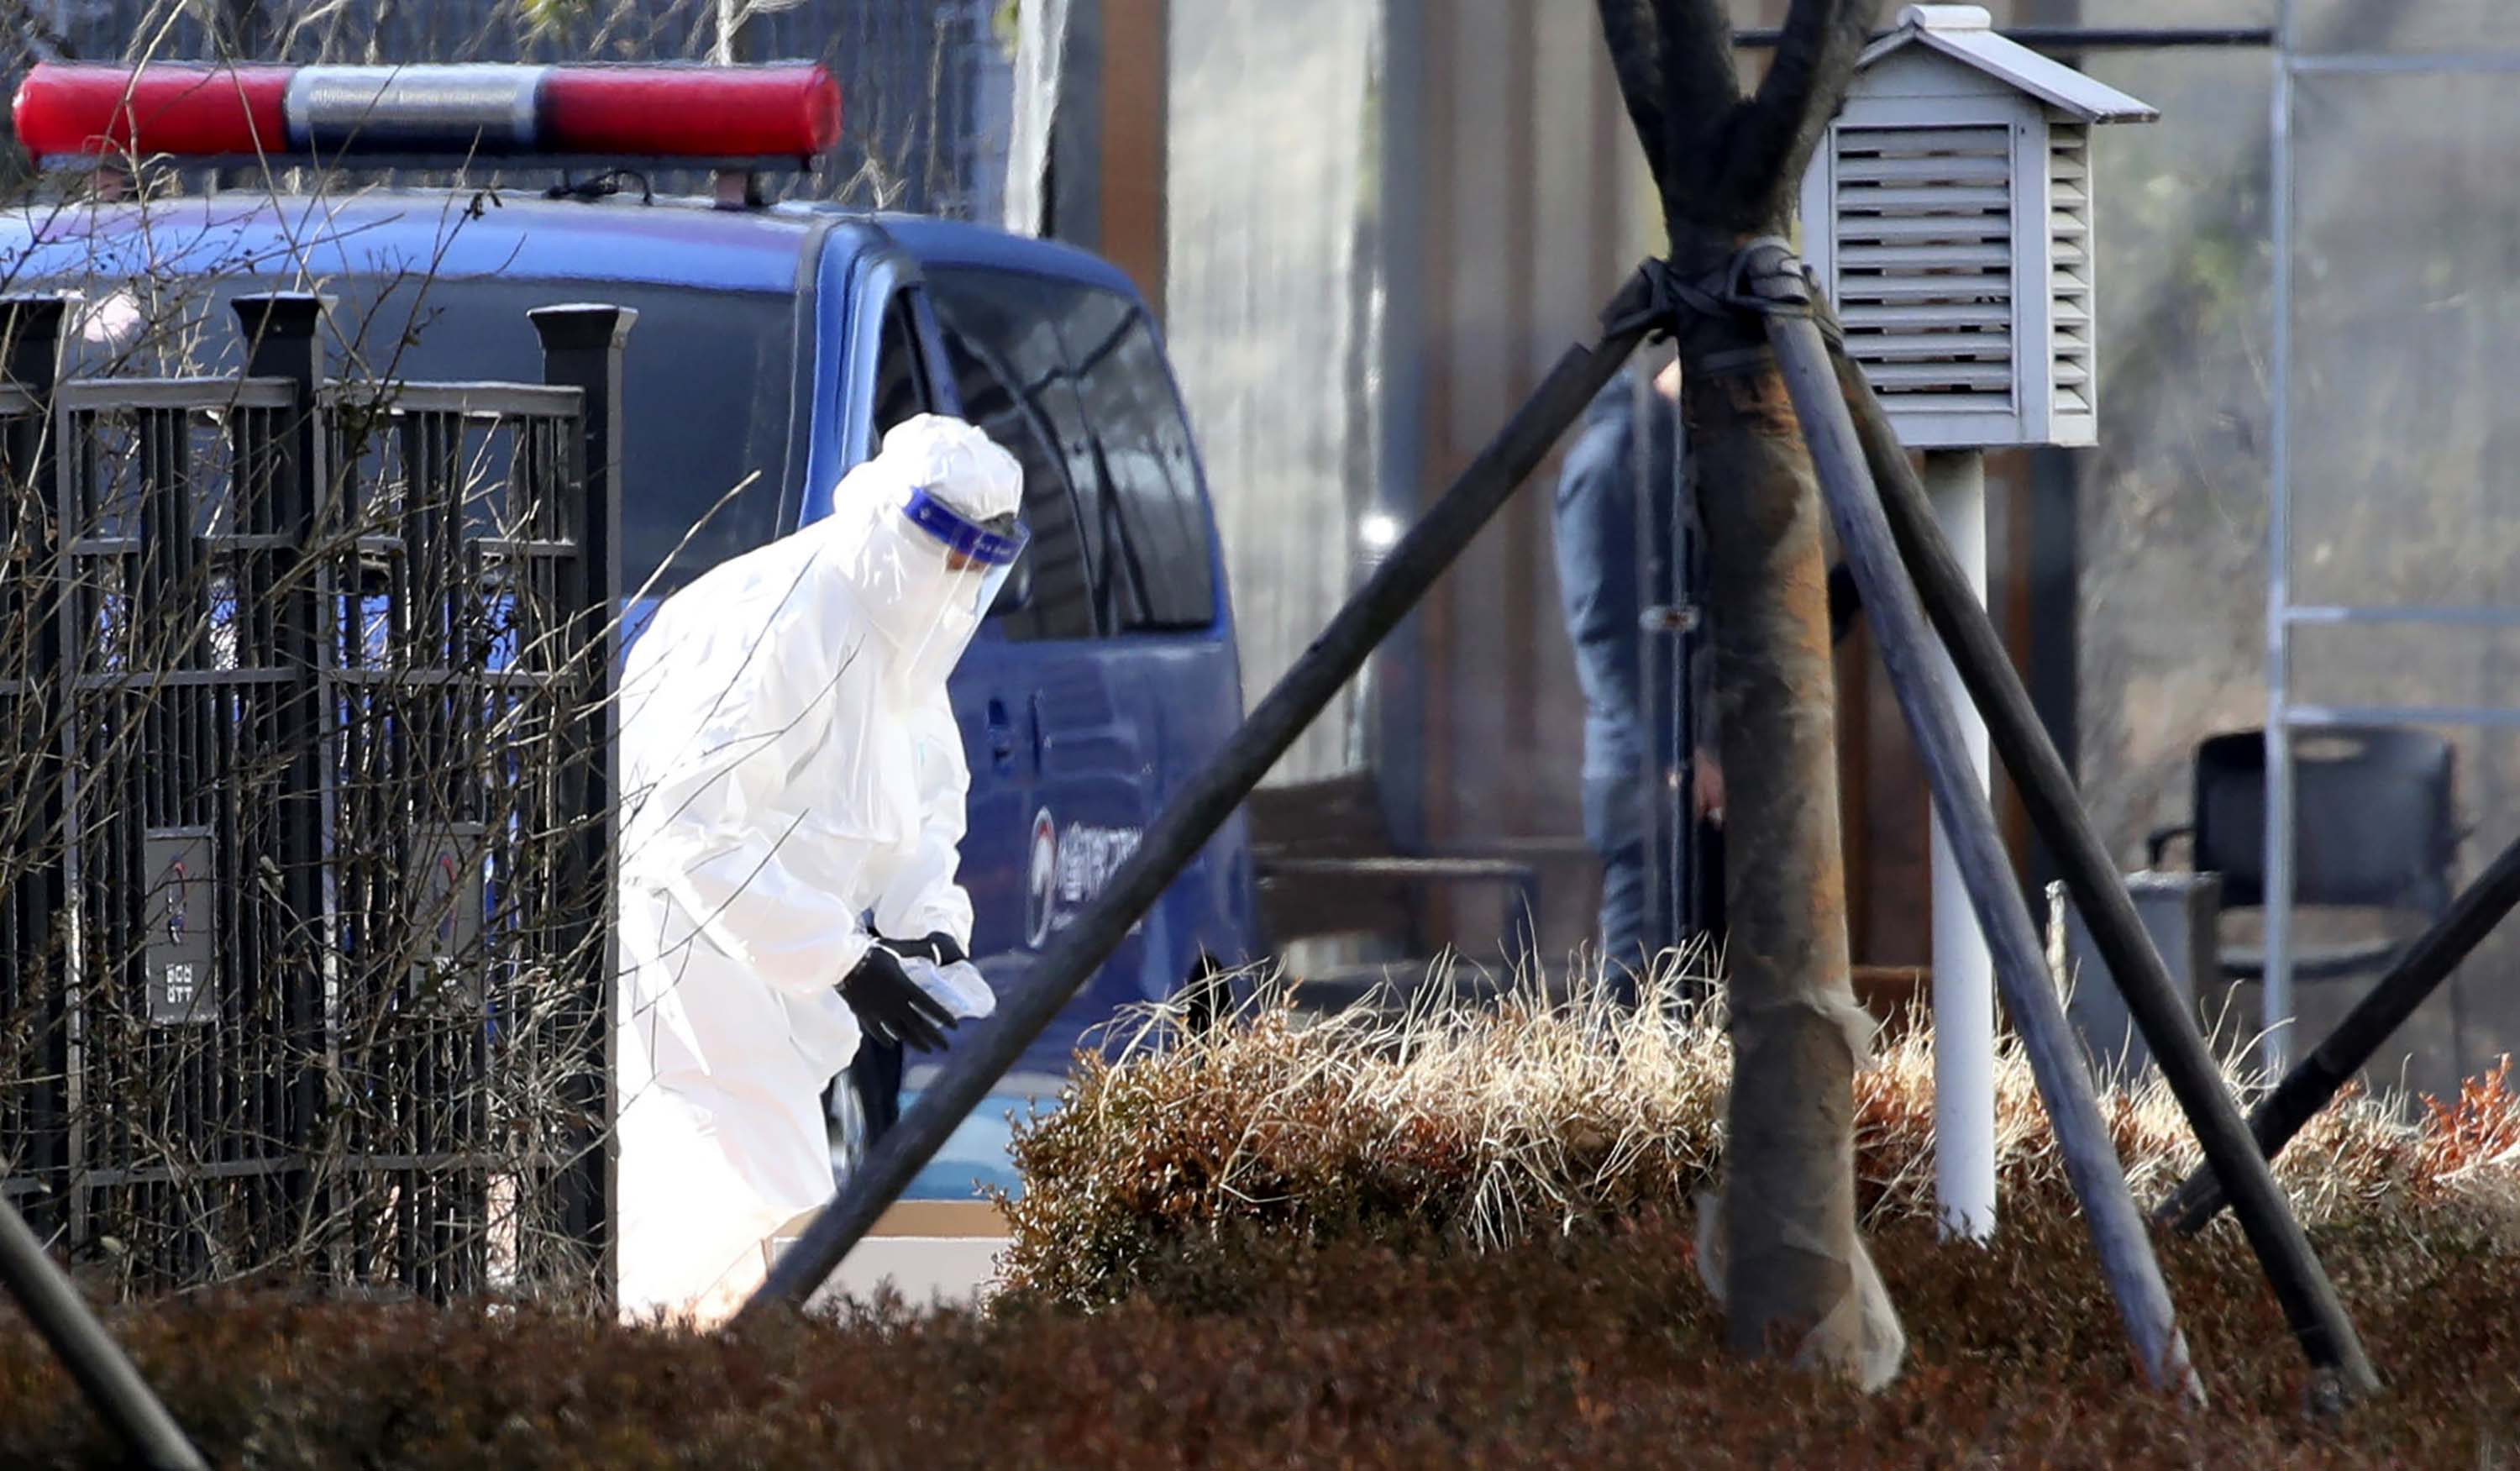 A person wearing protective gear is pictured at Seoul's Dongbu Detention Center in Seoul, South Korea, on December 31, 2020.